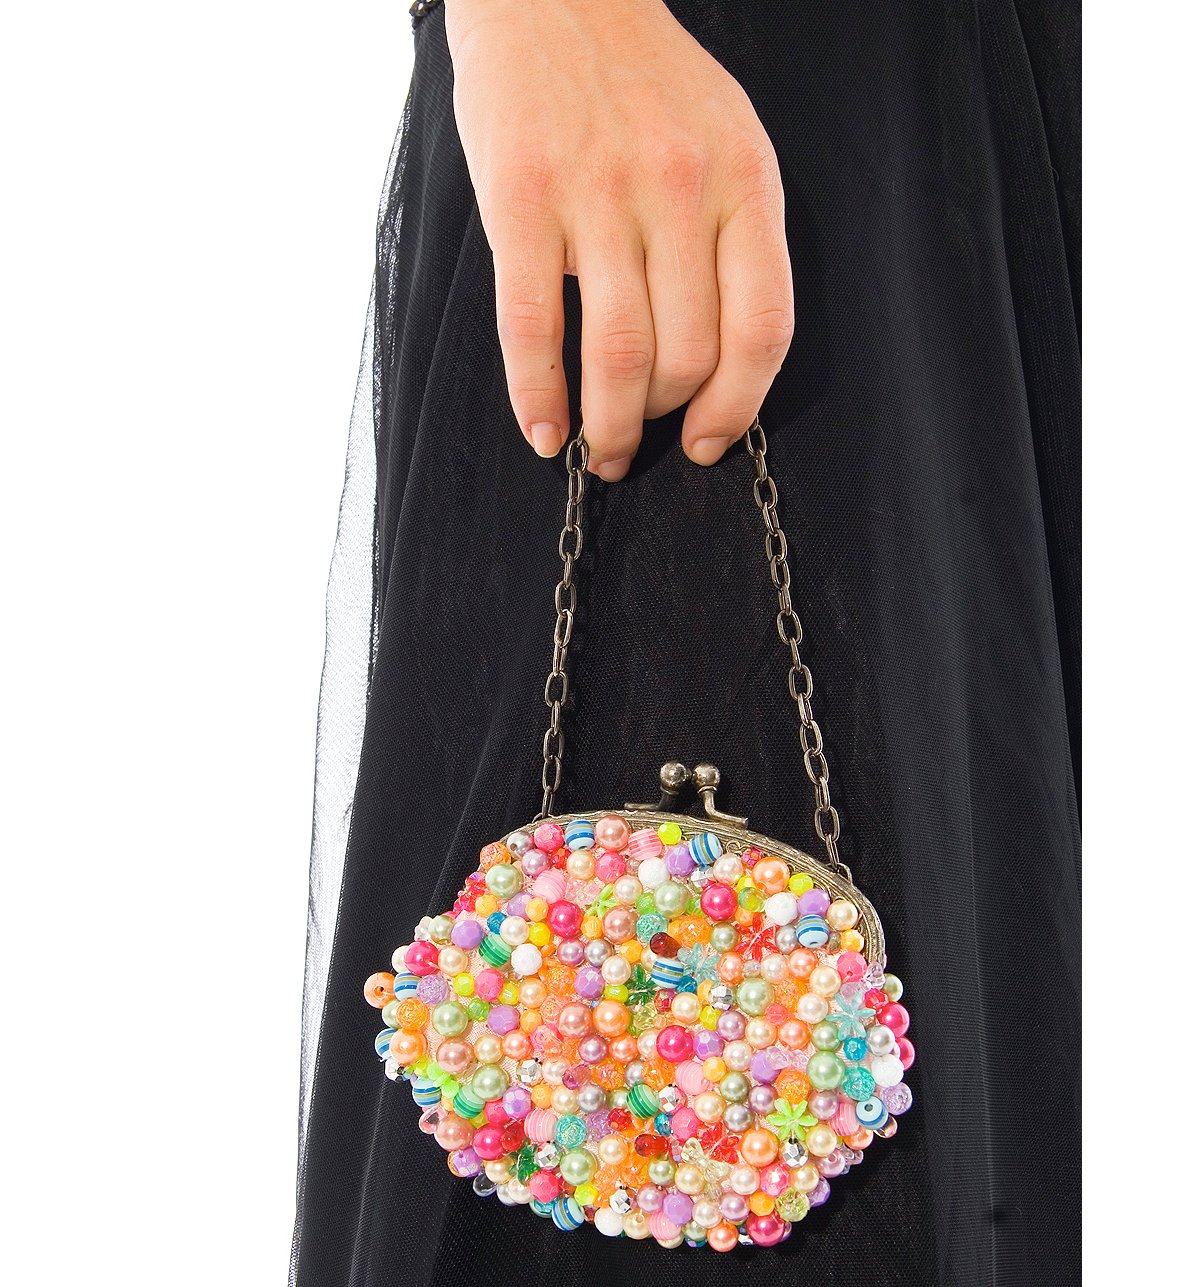 Pearl Confetti Beaded Bag